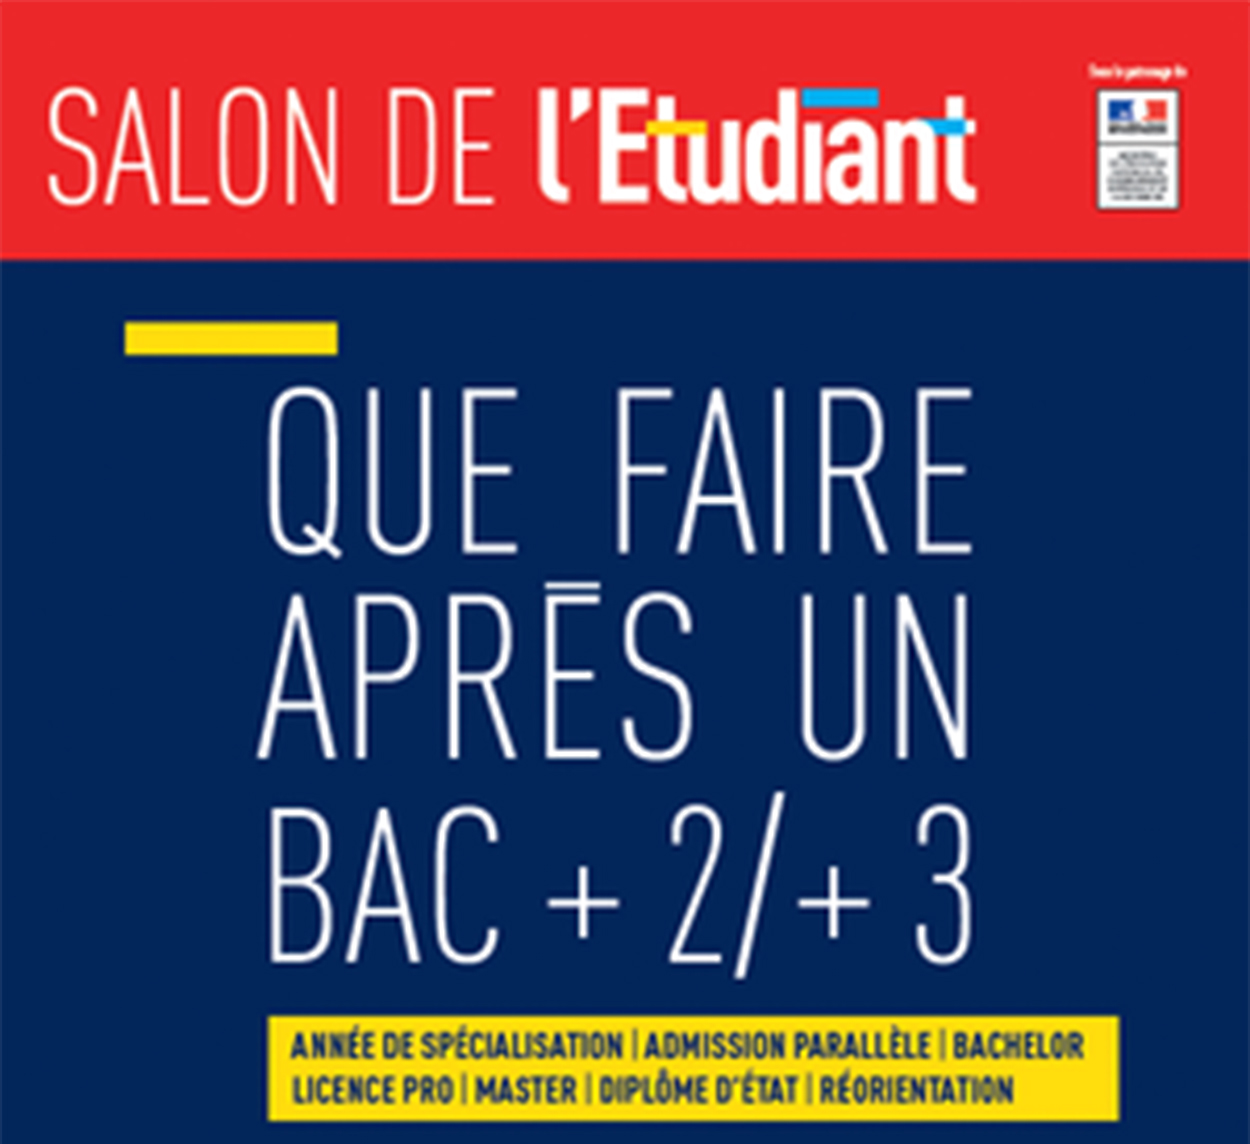 Que faire apr s un bac 2 3 samedi 25 f vrier 2017 for Porte de champerret salon de l etudiant